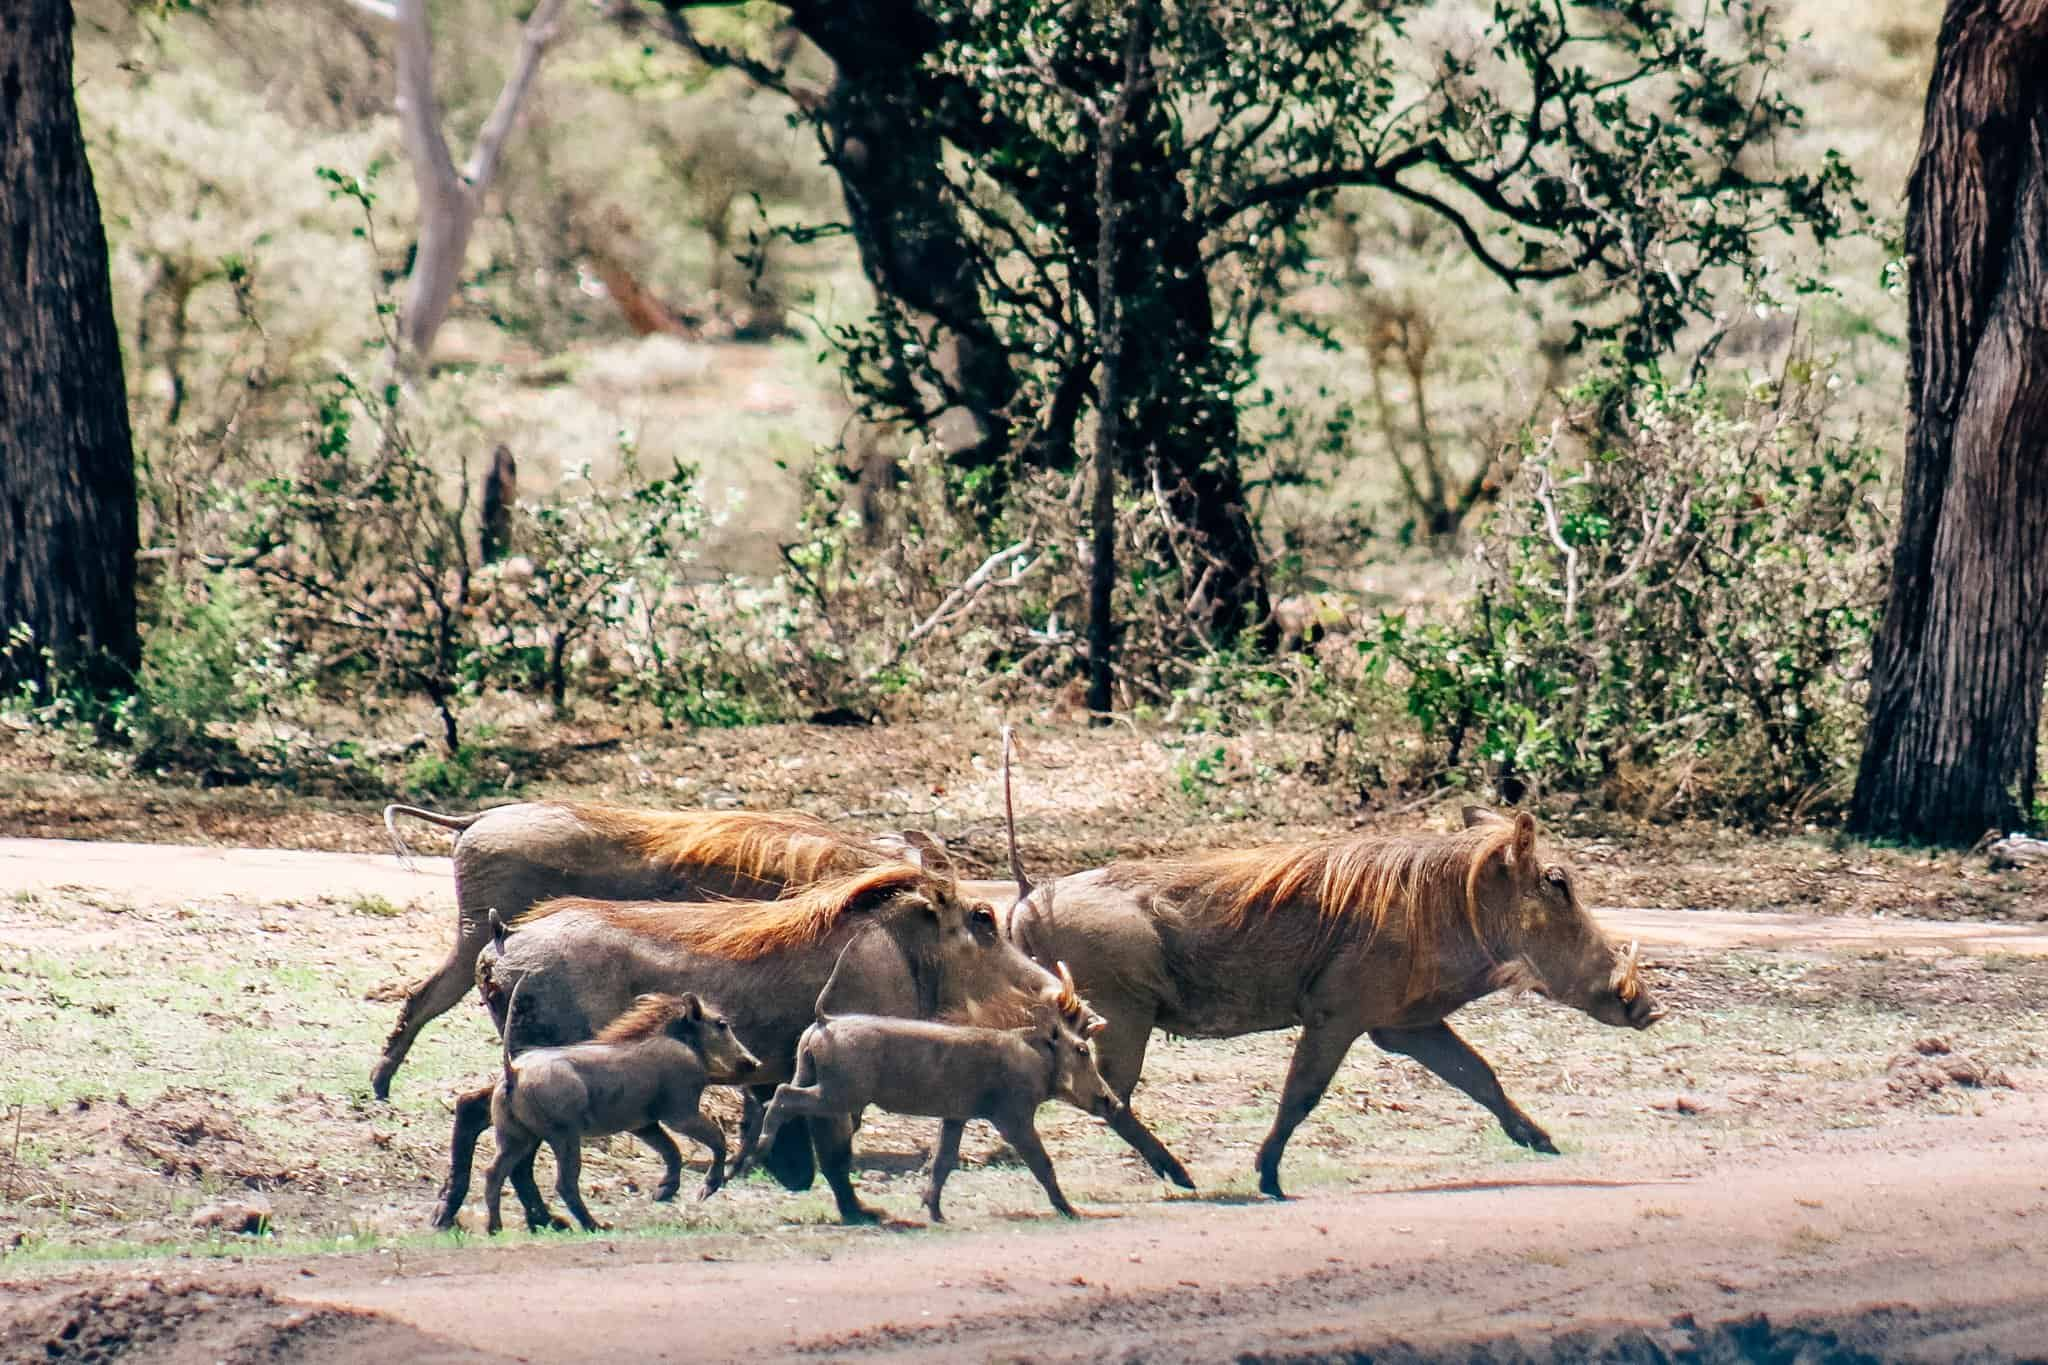 Warthog Family on African Safari Drive in the Selous Game Reserve